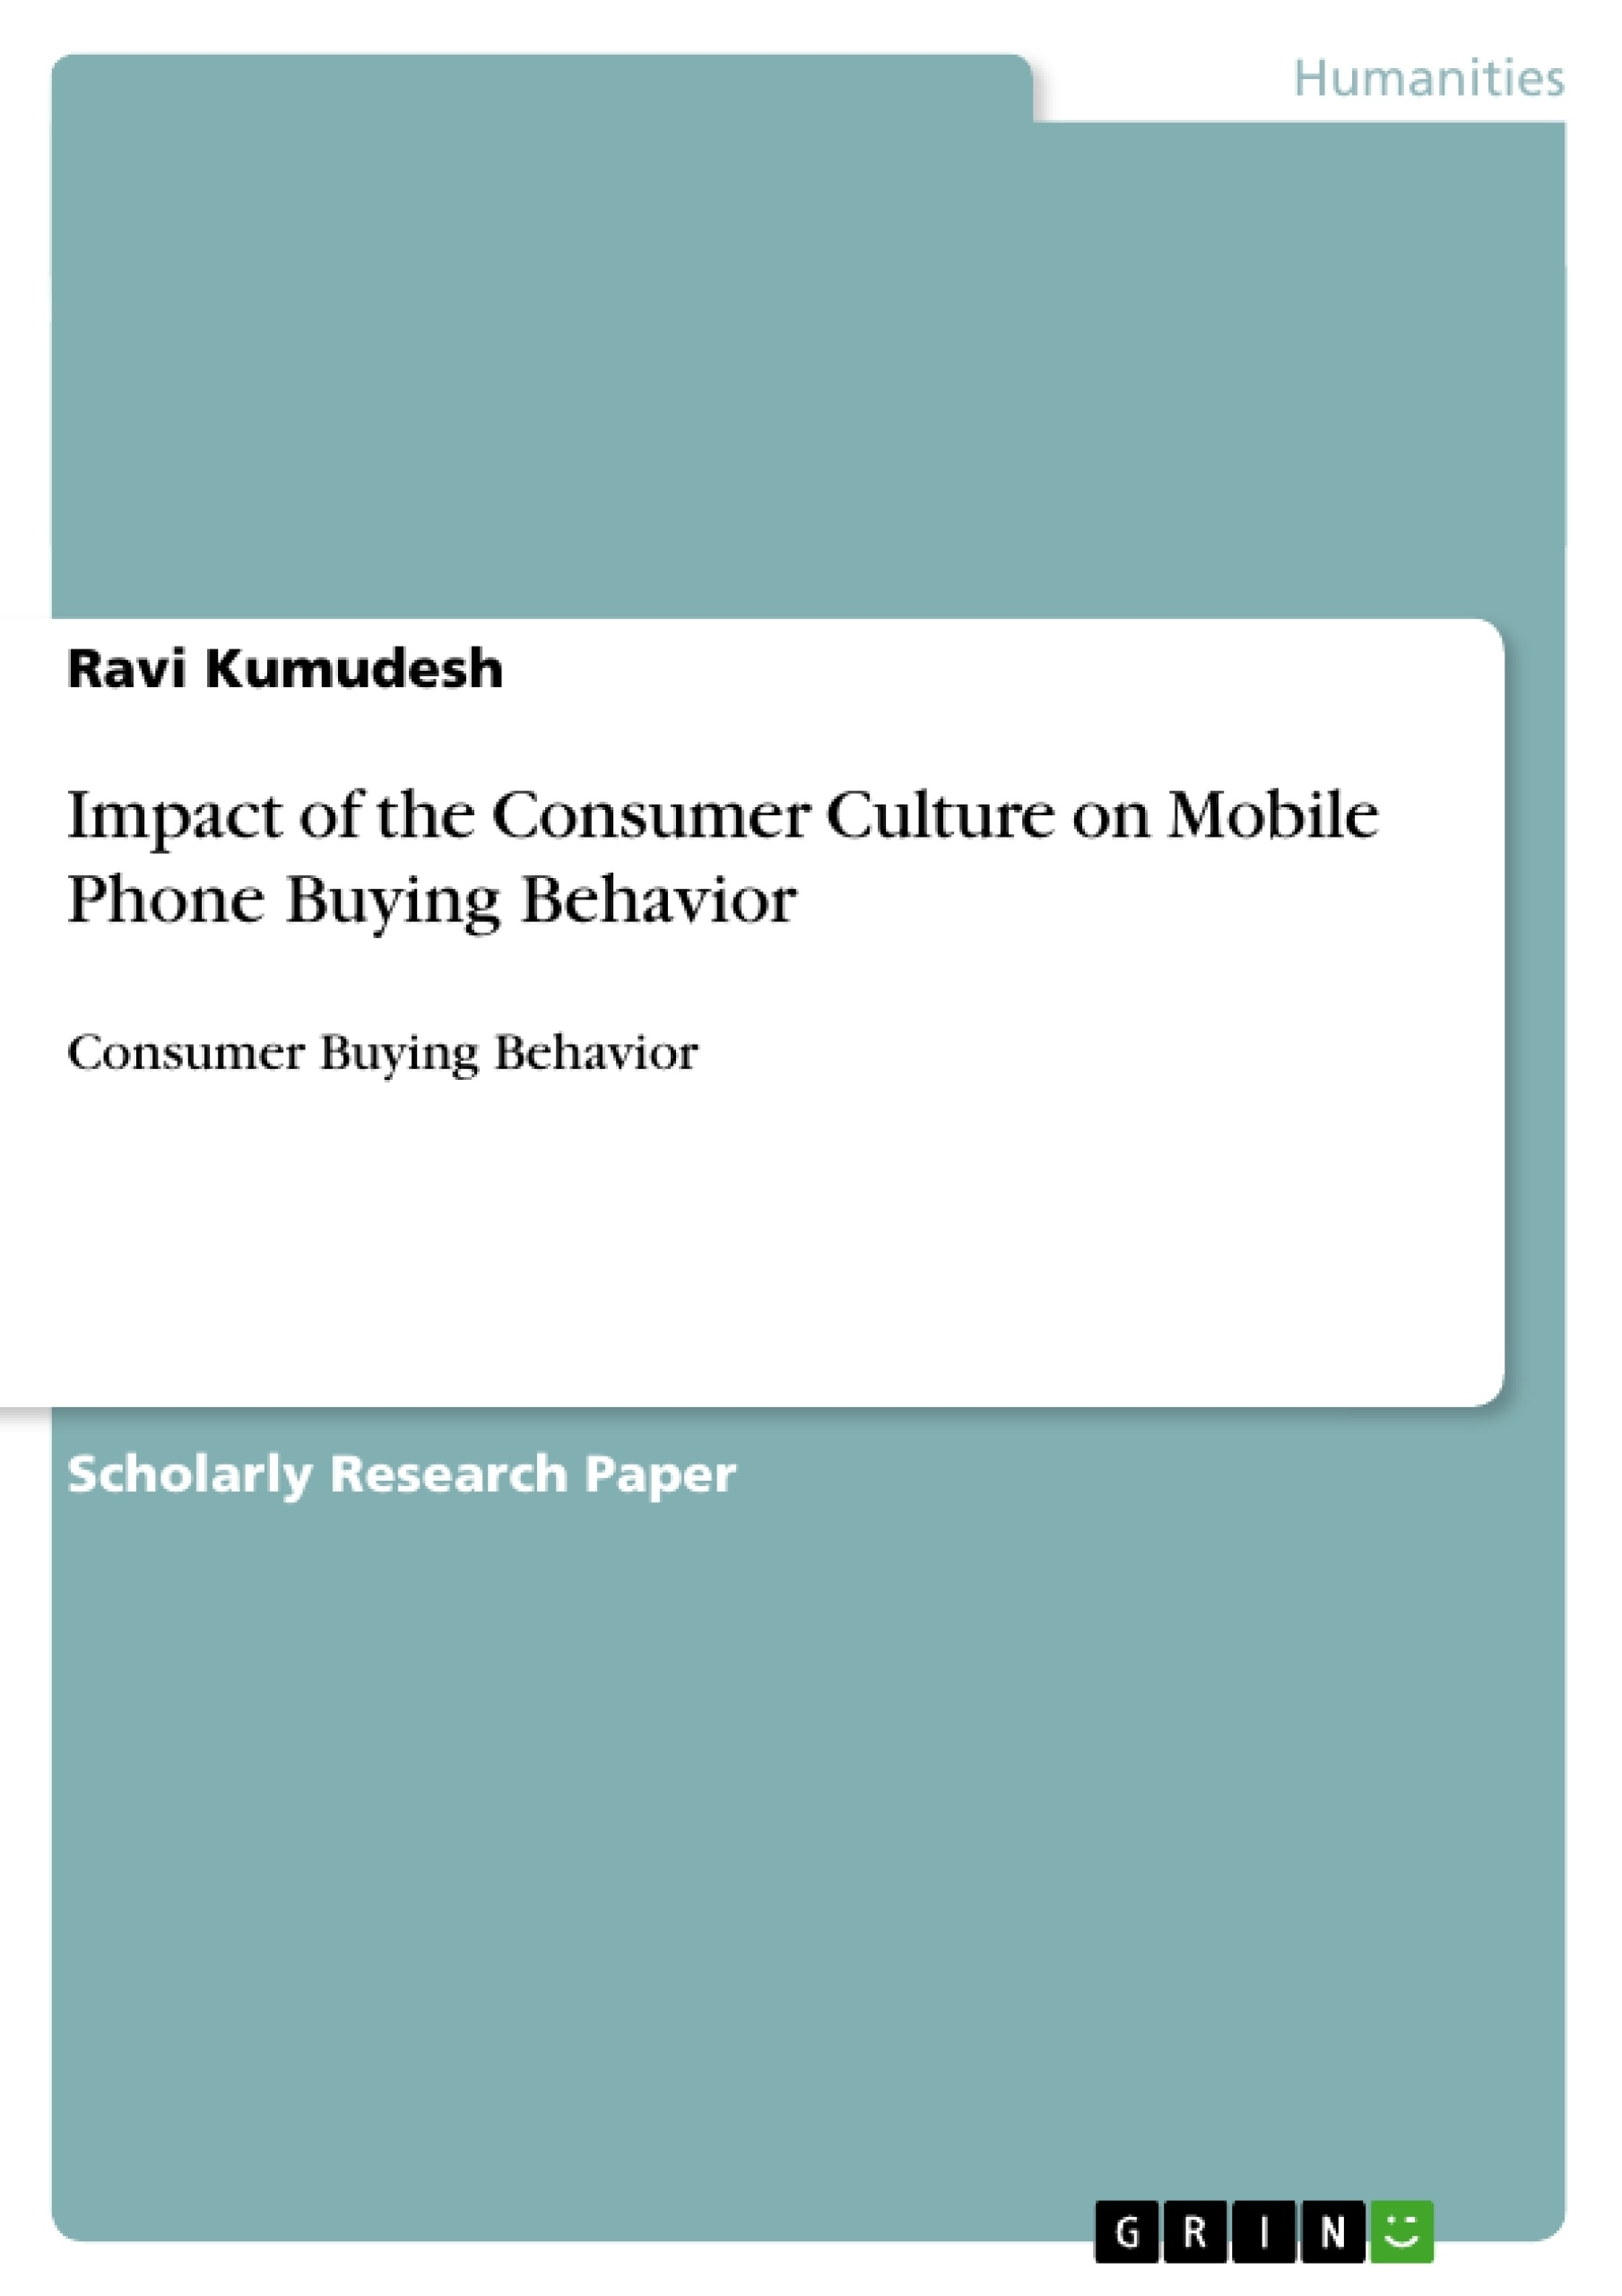 GRIN - Impact of the Consumer Culture on Mobile Phone Buying Behavior